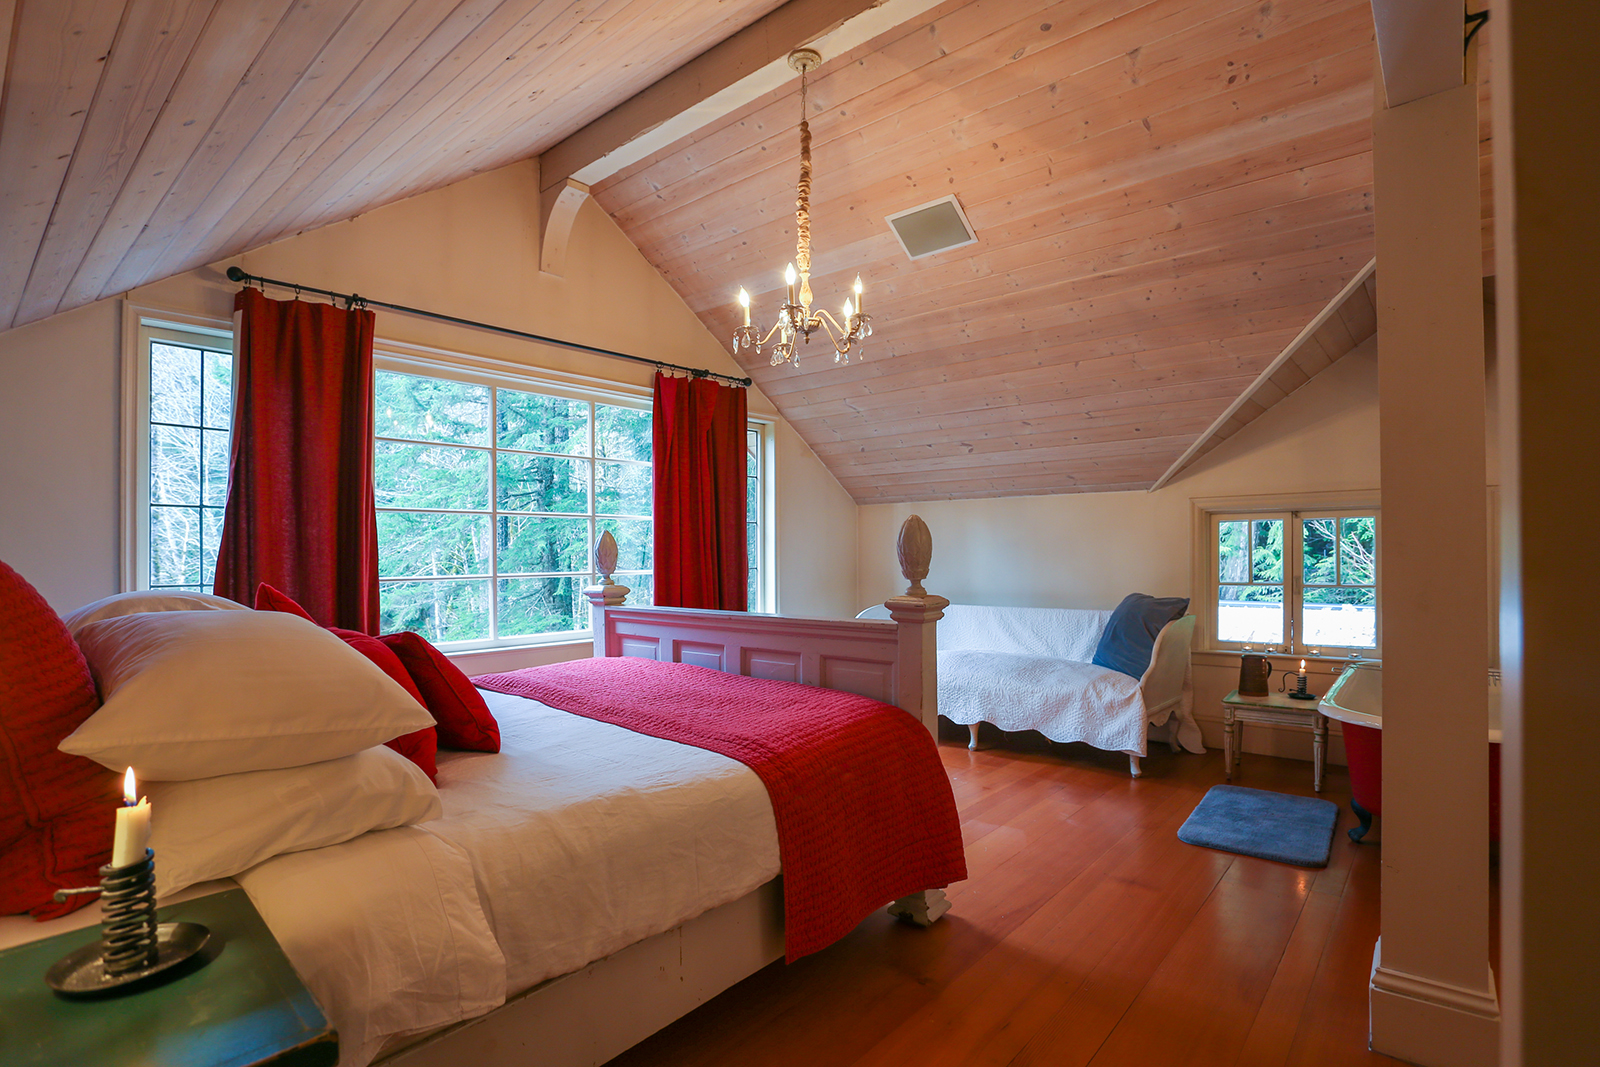 How to Take Great Pictures for Your Airbnb Rental Unit